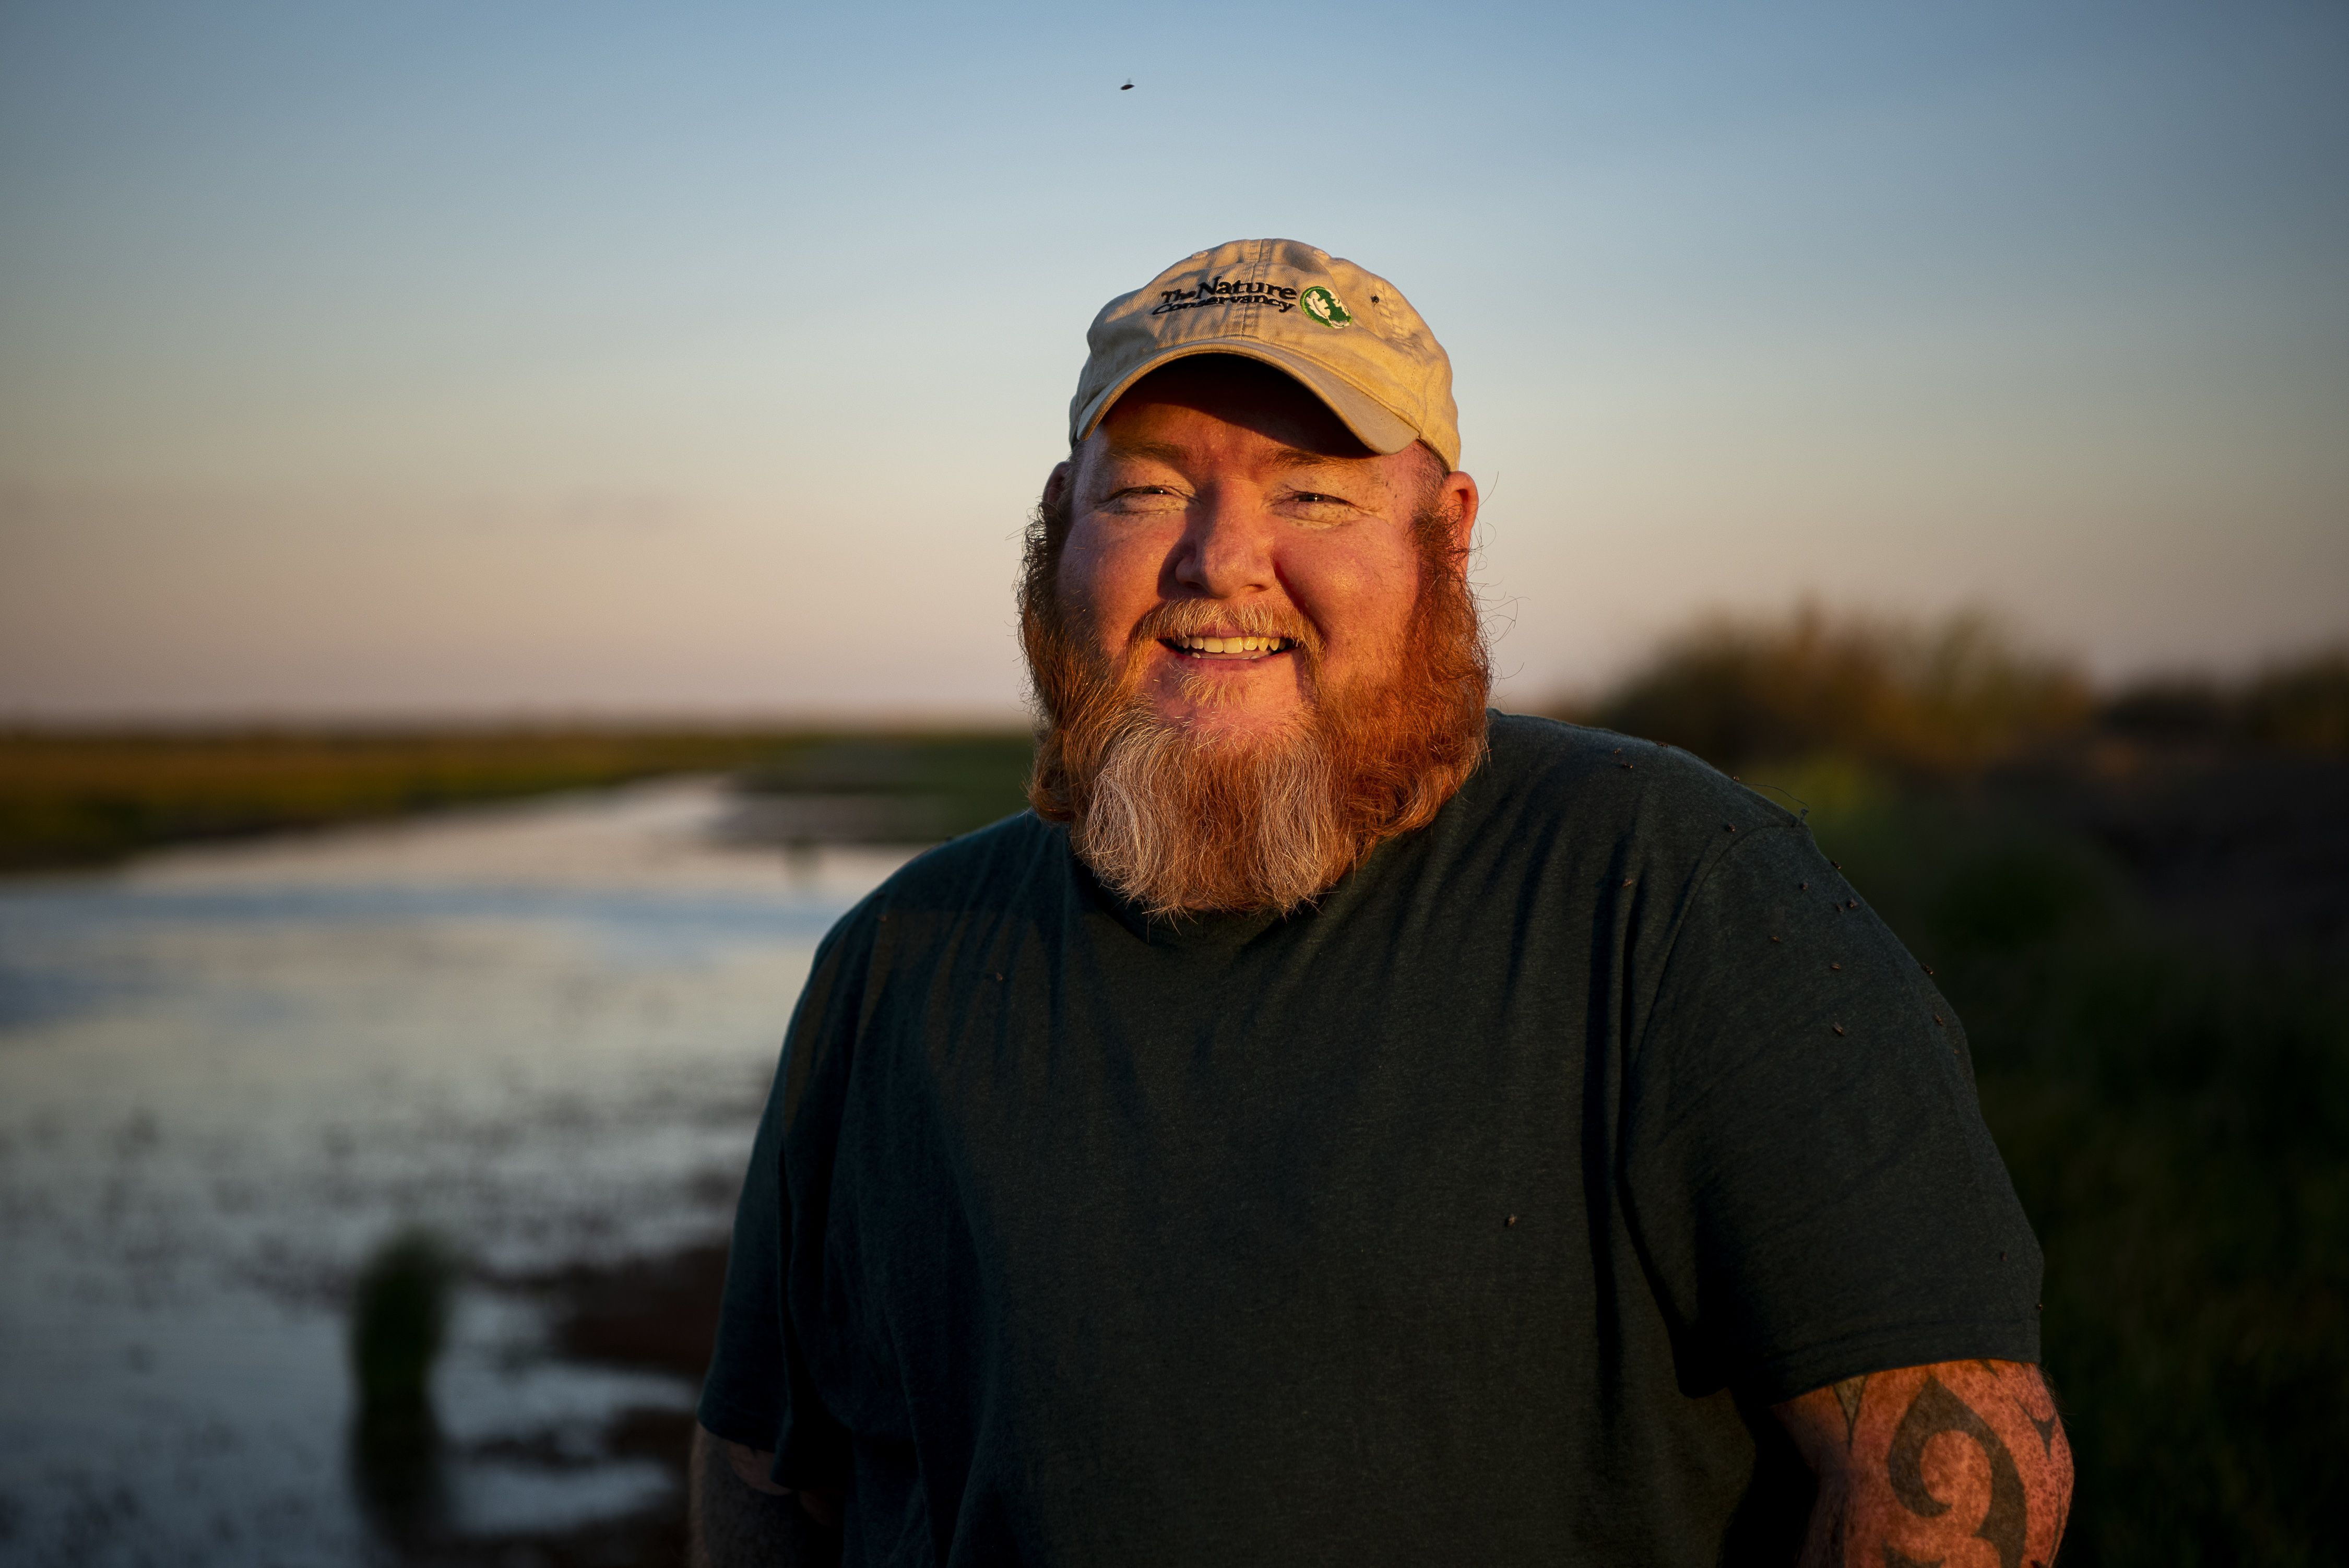 portrait of a bearded man at dusk, with a body of water behind him